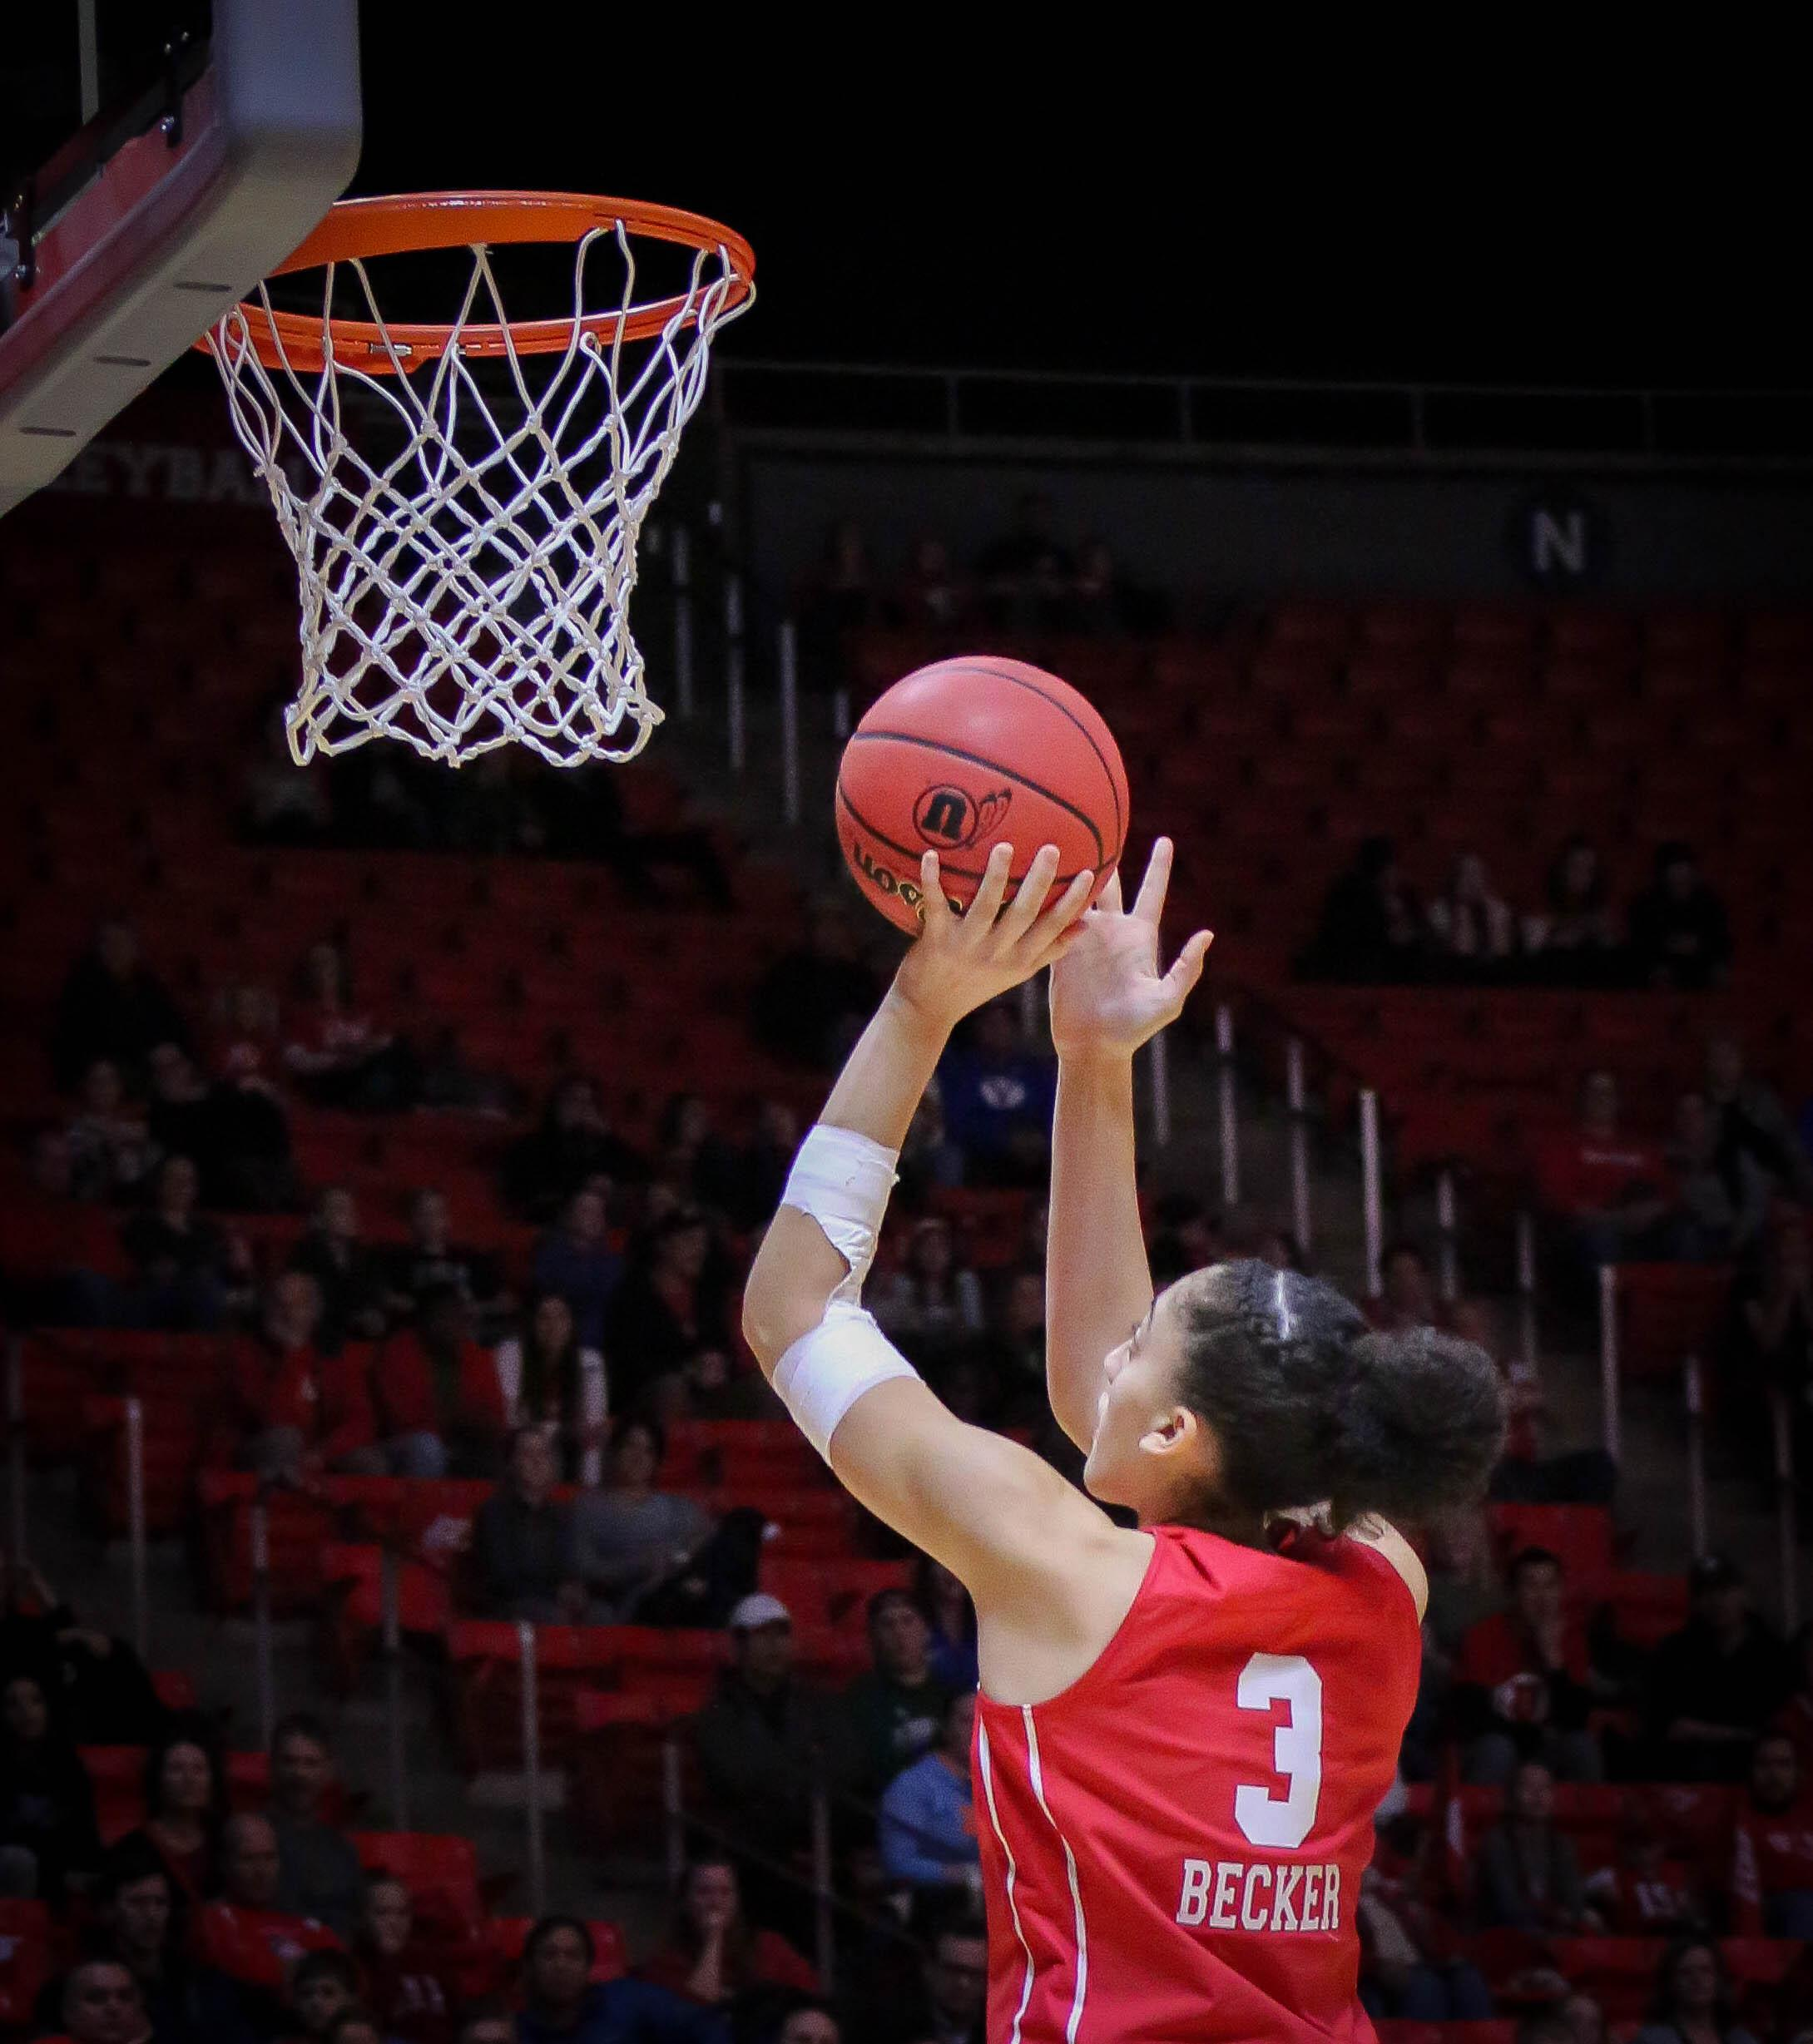 NIYAH BECKER (3) shoots and makes it as The University of Utah Lady Utes take on Brigham Young University at the Huntsman Center in Salt Lake City, UT on Saturaday, Dec. 8, 2018 (Photo by Cassandra Palor | Daily Utah Chronicle)